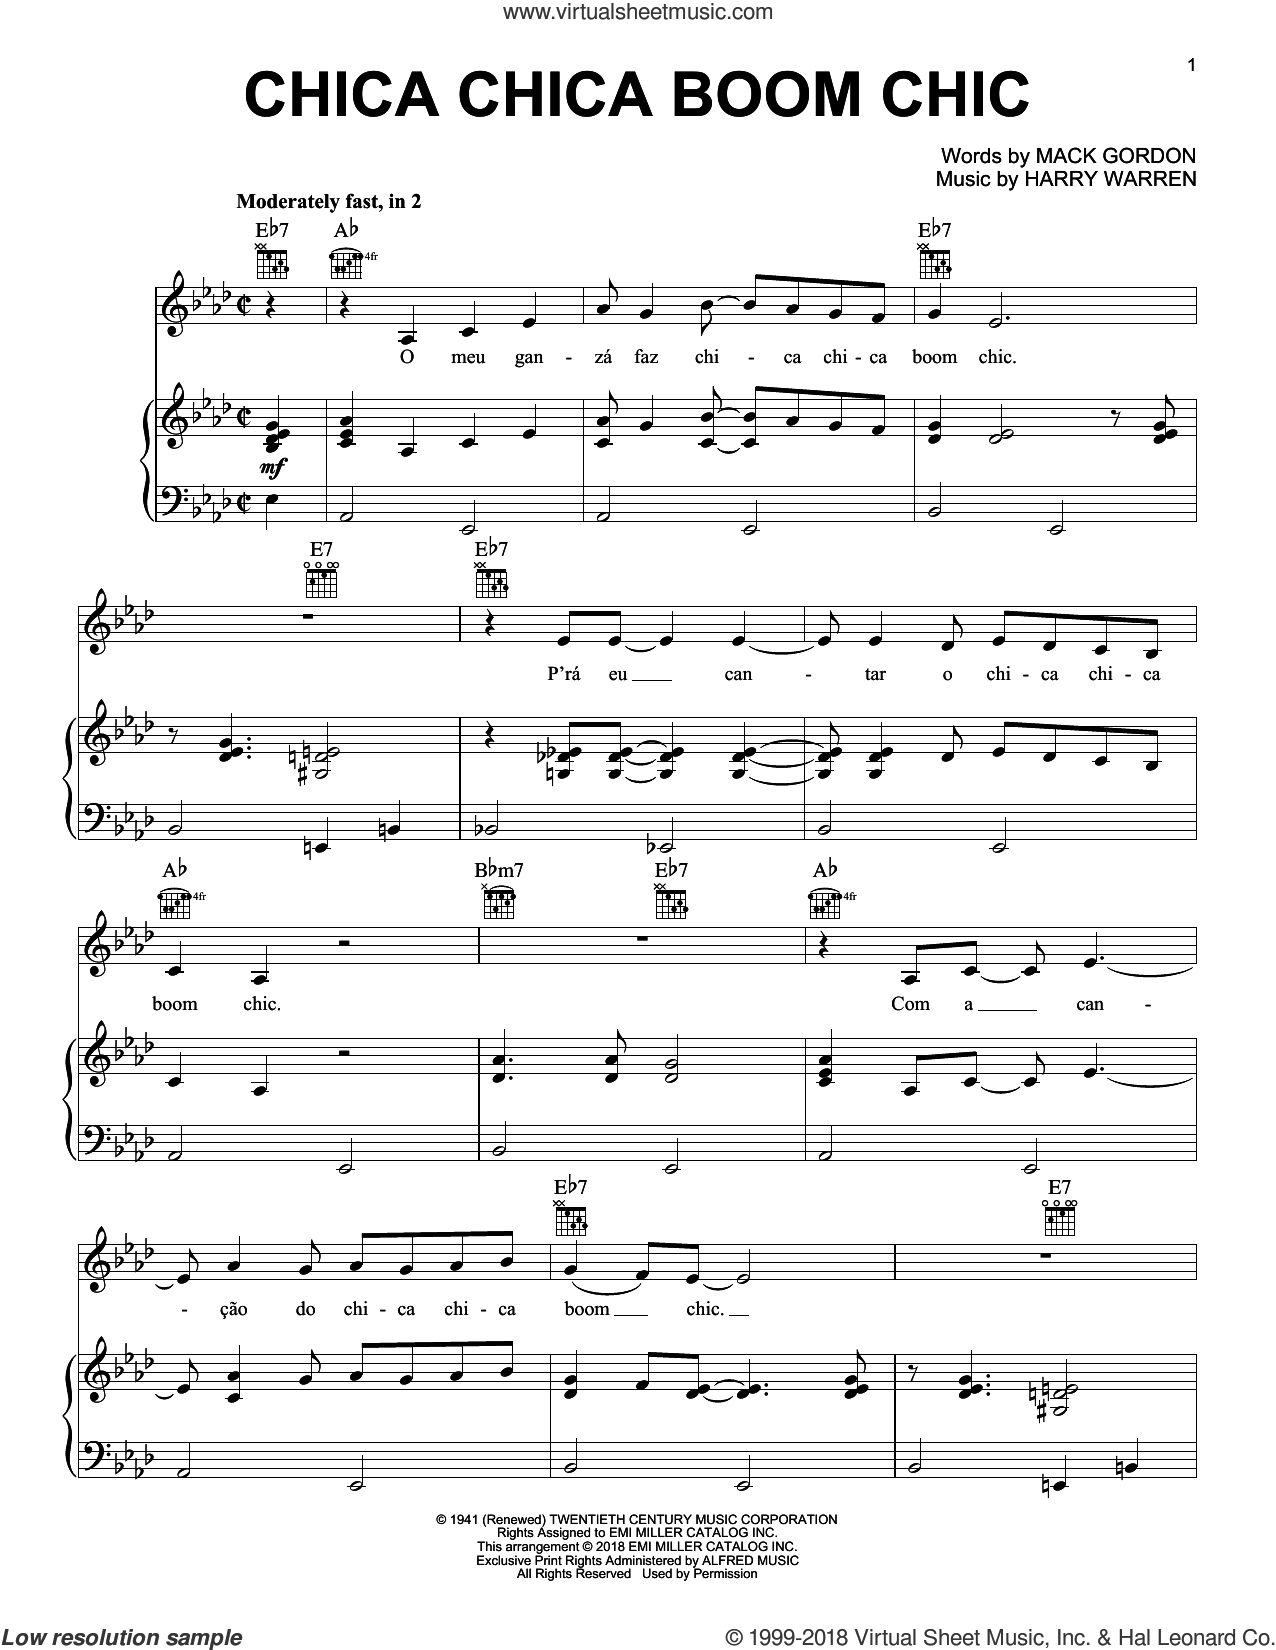 Chica Chica Boom Chic sheet music for voice, piano or guitar by Harry Warren, Alexandre Desplat and Mack Gordon, intermediate skill level